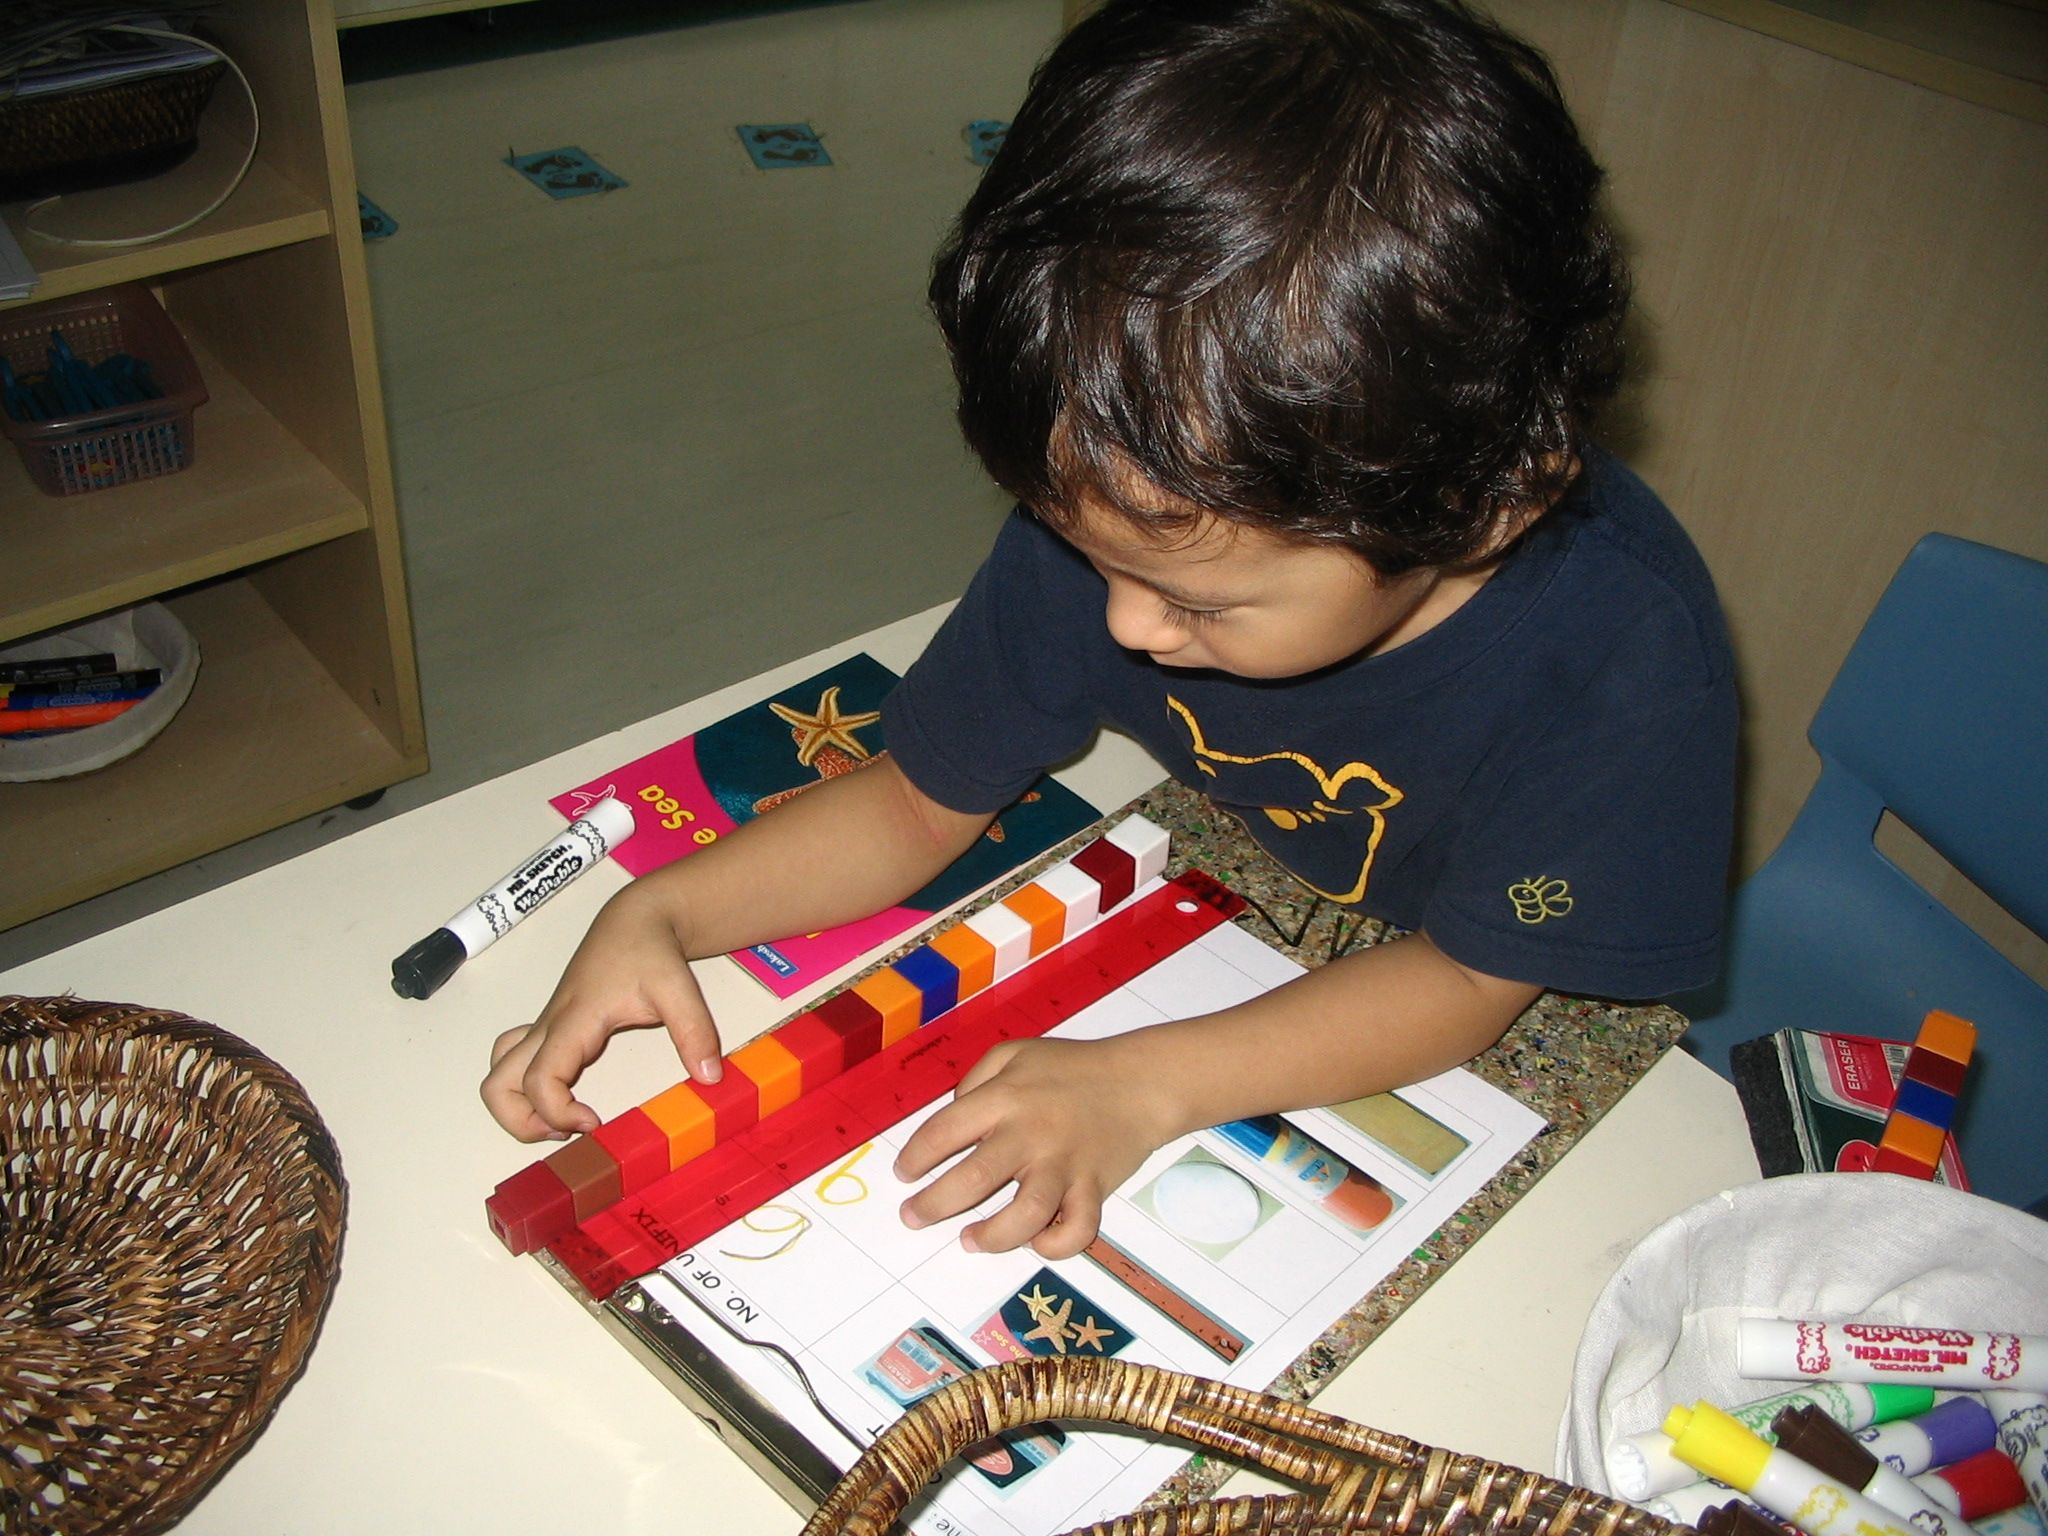 Measuring with unifix cubes literacy and numeracy